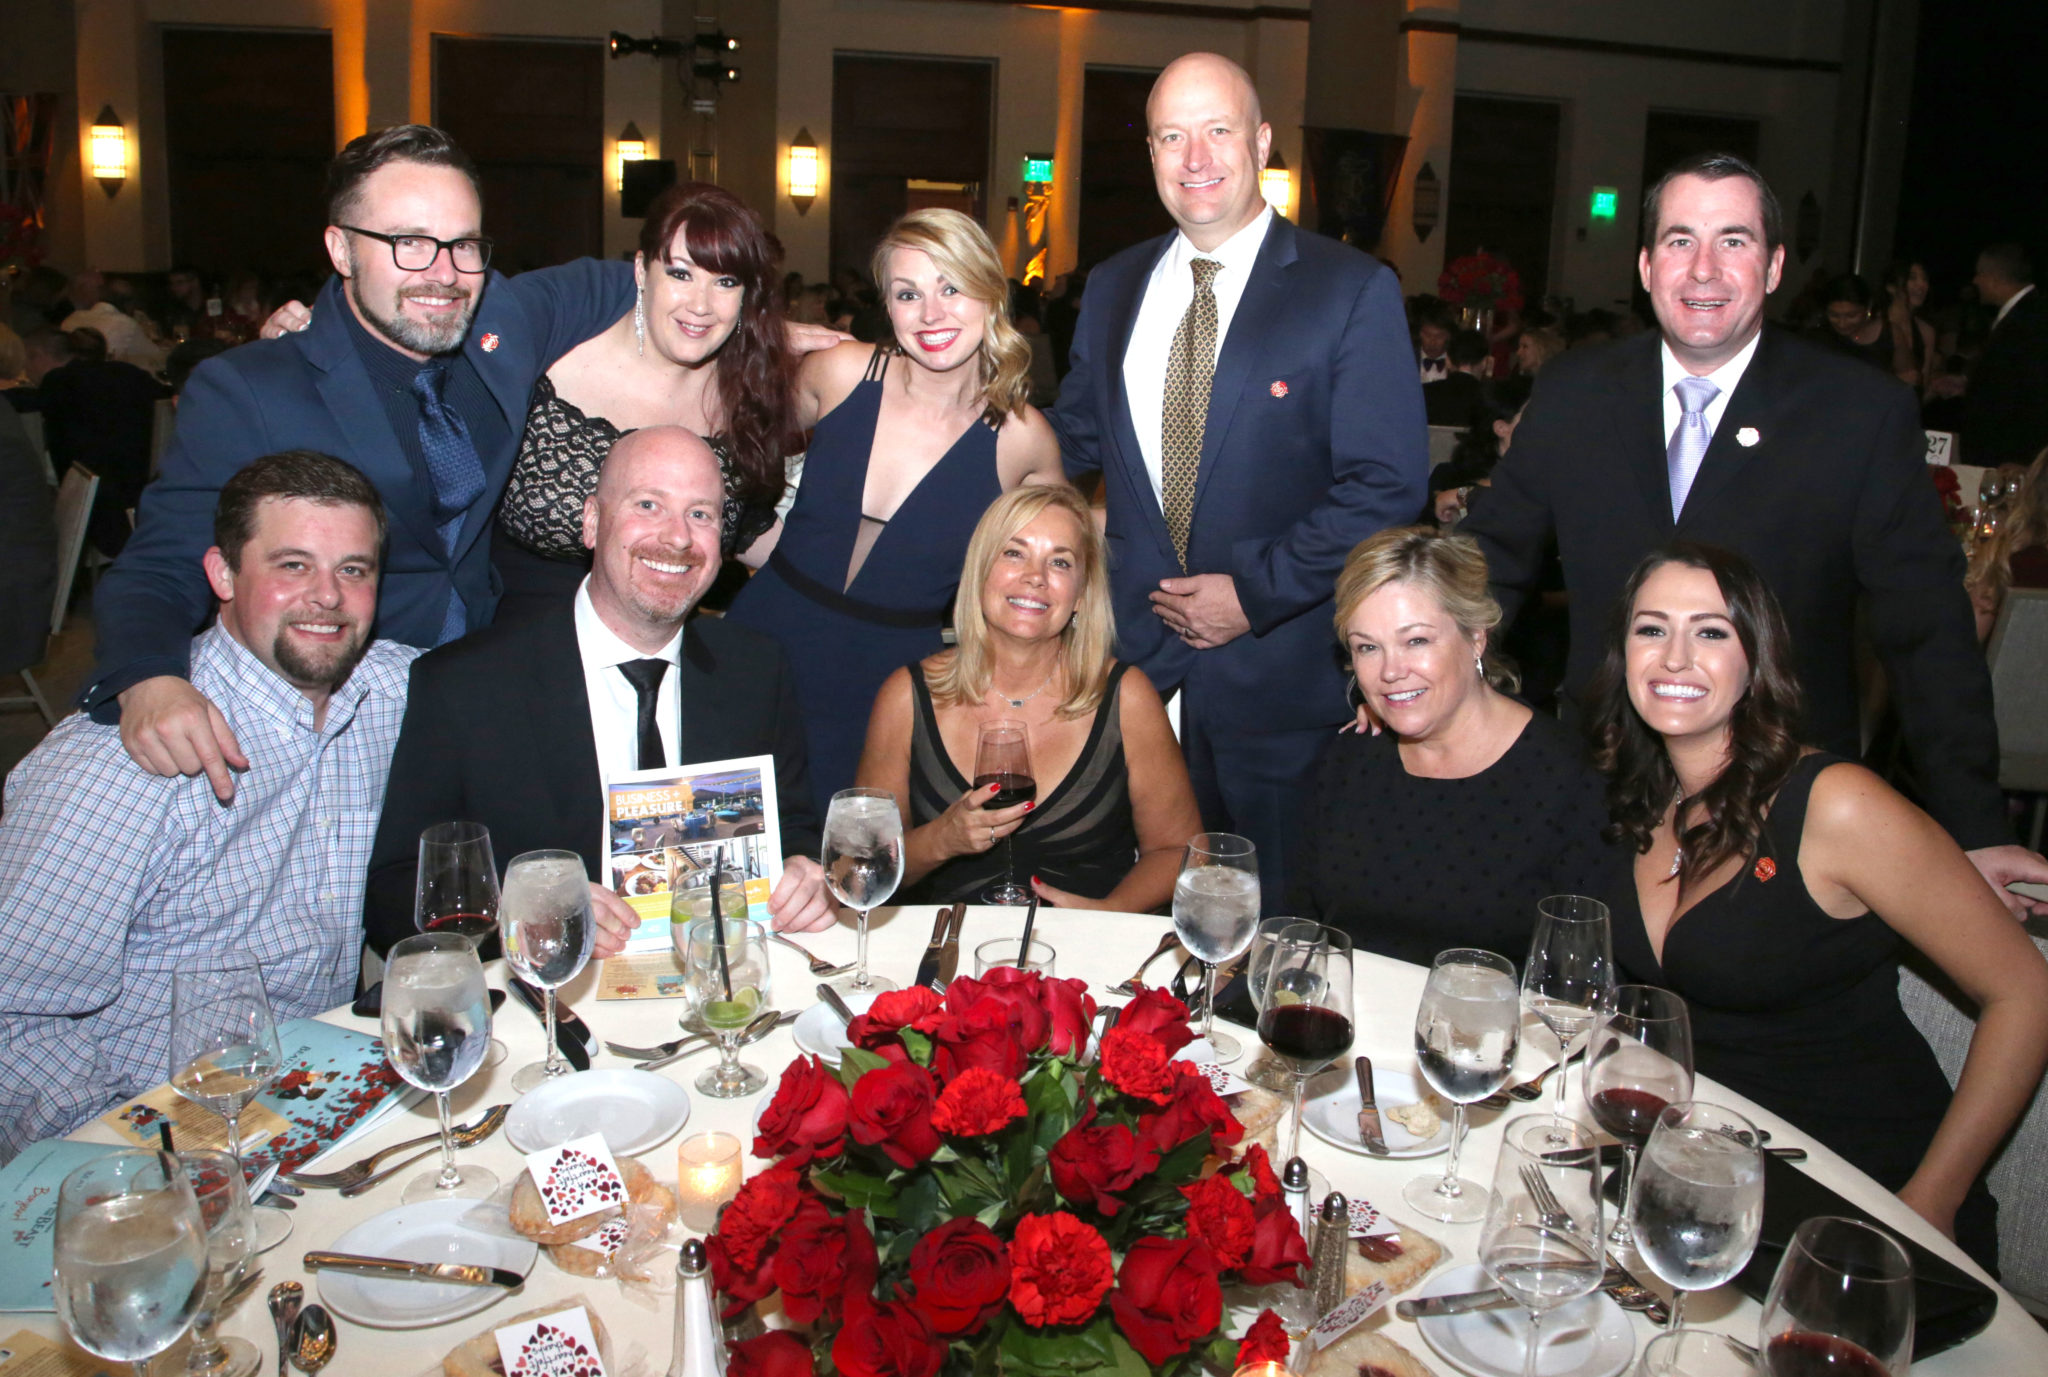 McNight Gala guests from Hotel Valley Ho pose at their table in the Camelback Inn ballroom